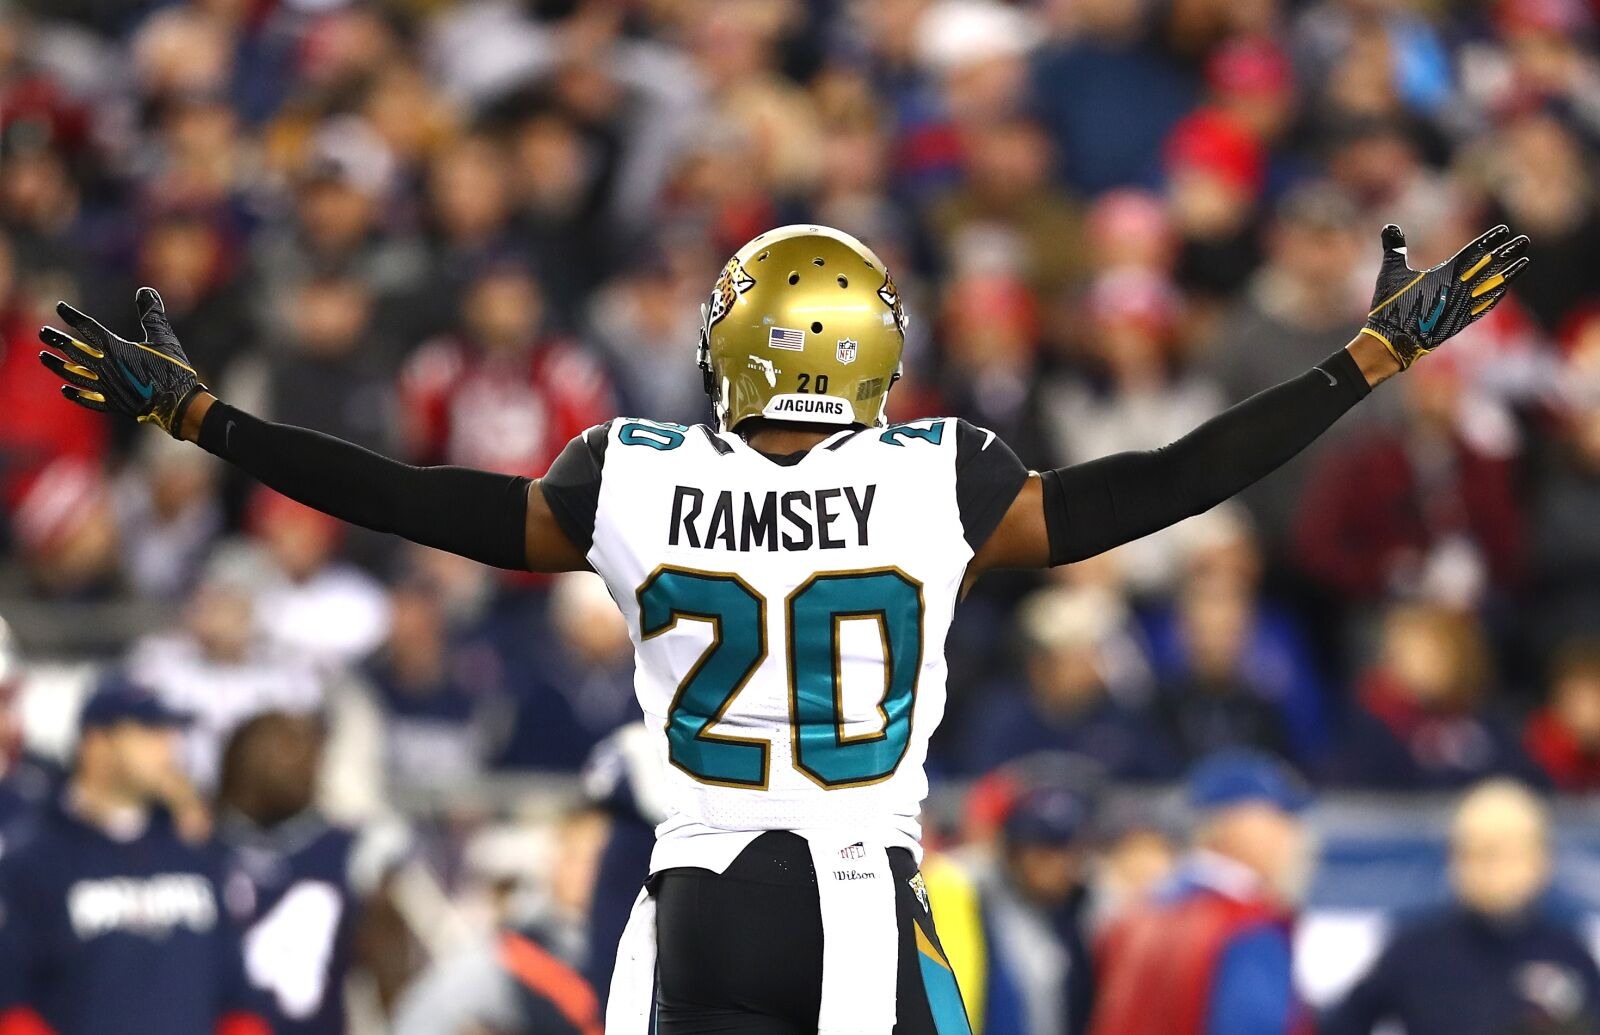 Jalen Ramsey right to clap back at comments from Jaguars executive